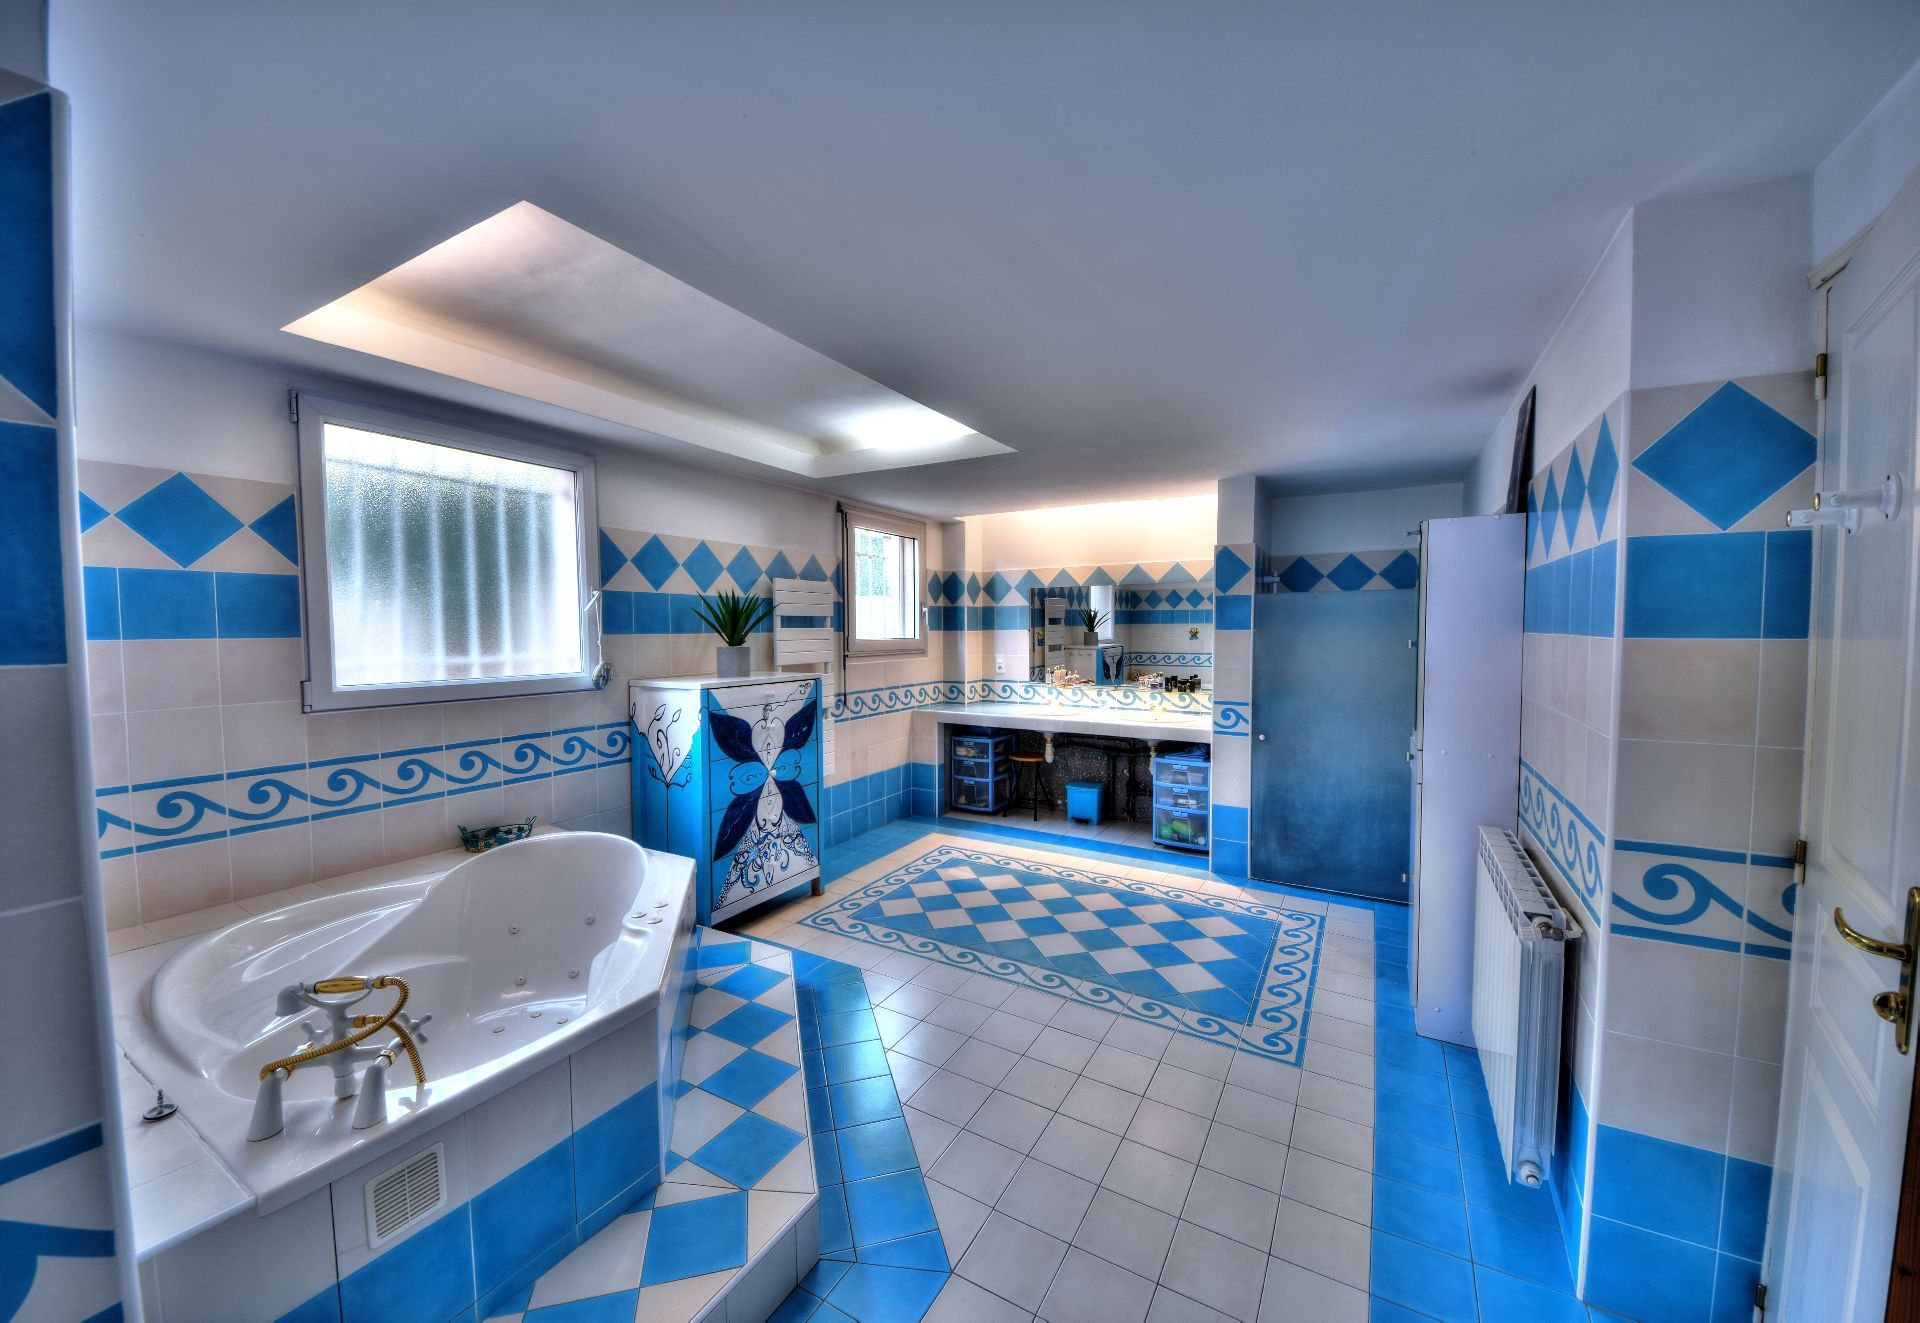 Bathroom of the villa 328 m² panoramic view, Draguignan, Var, Provence